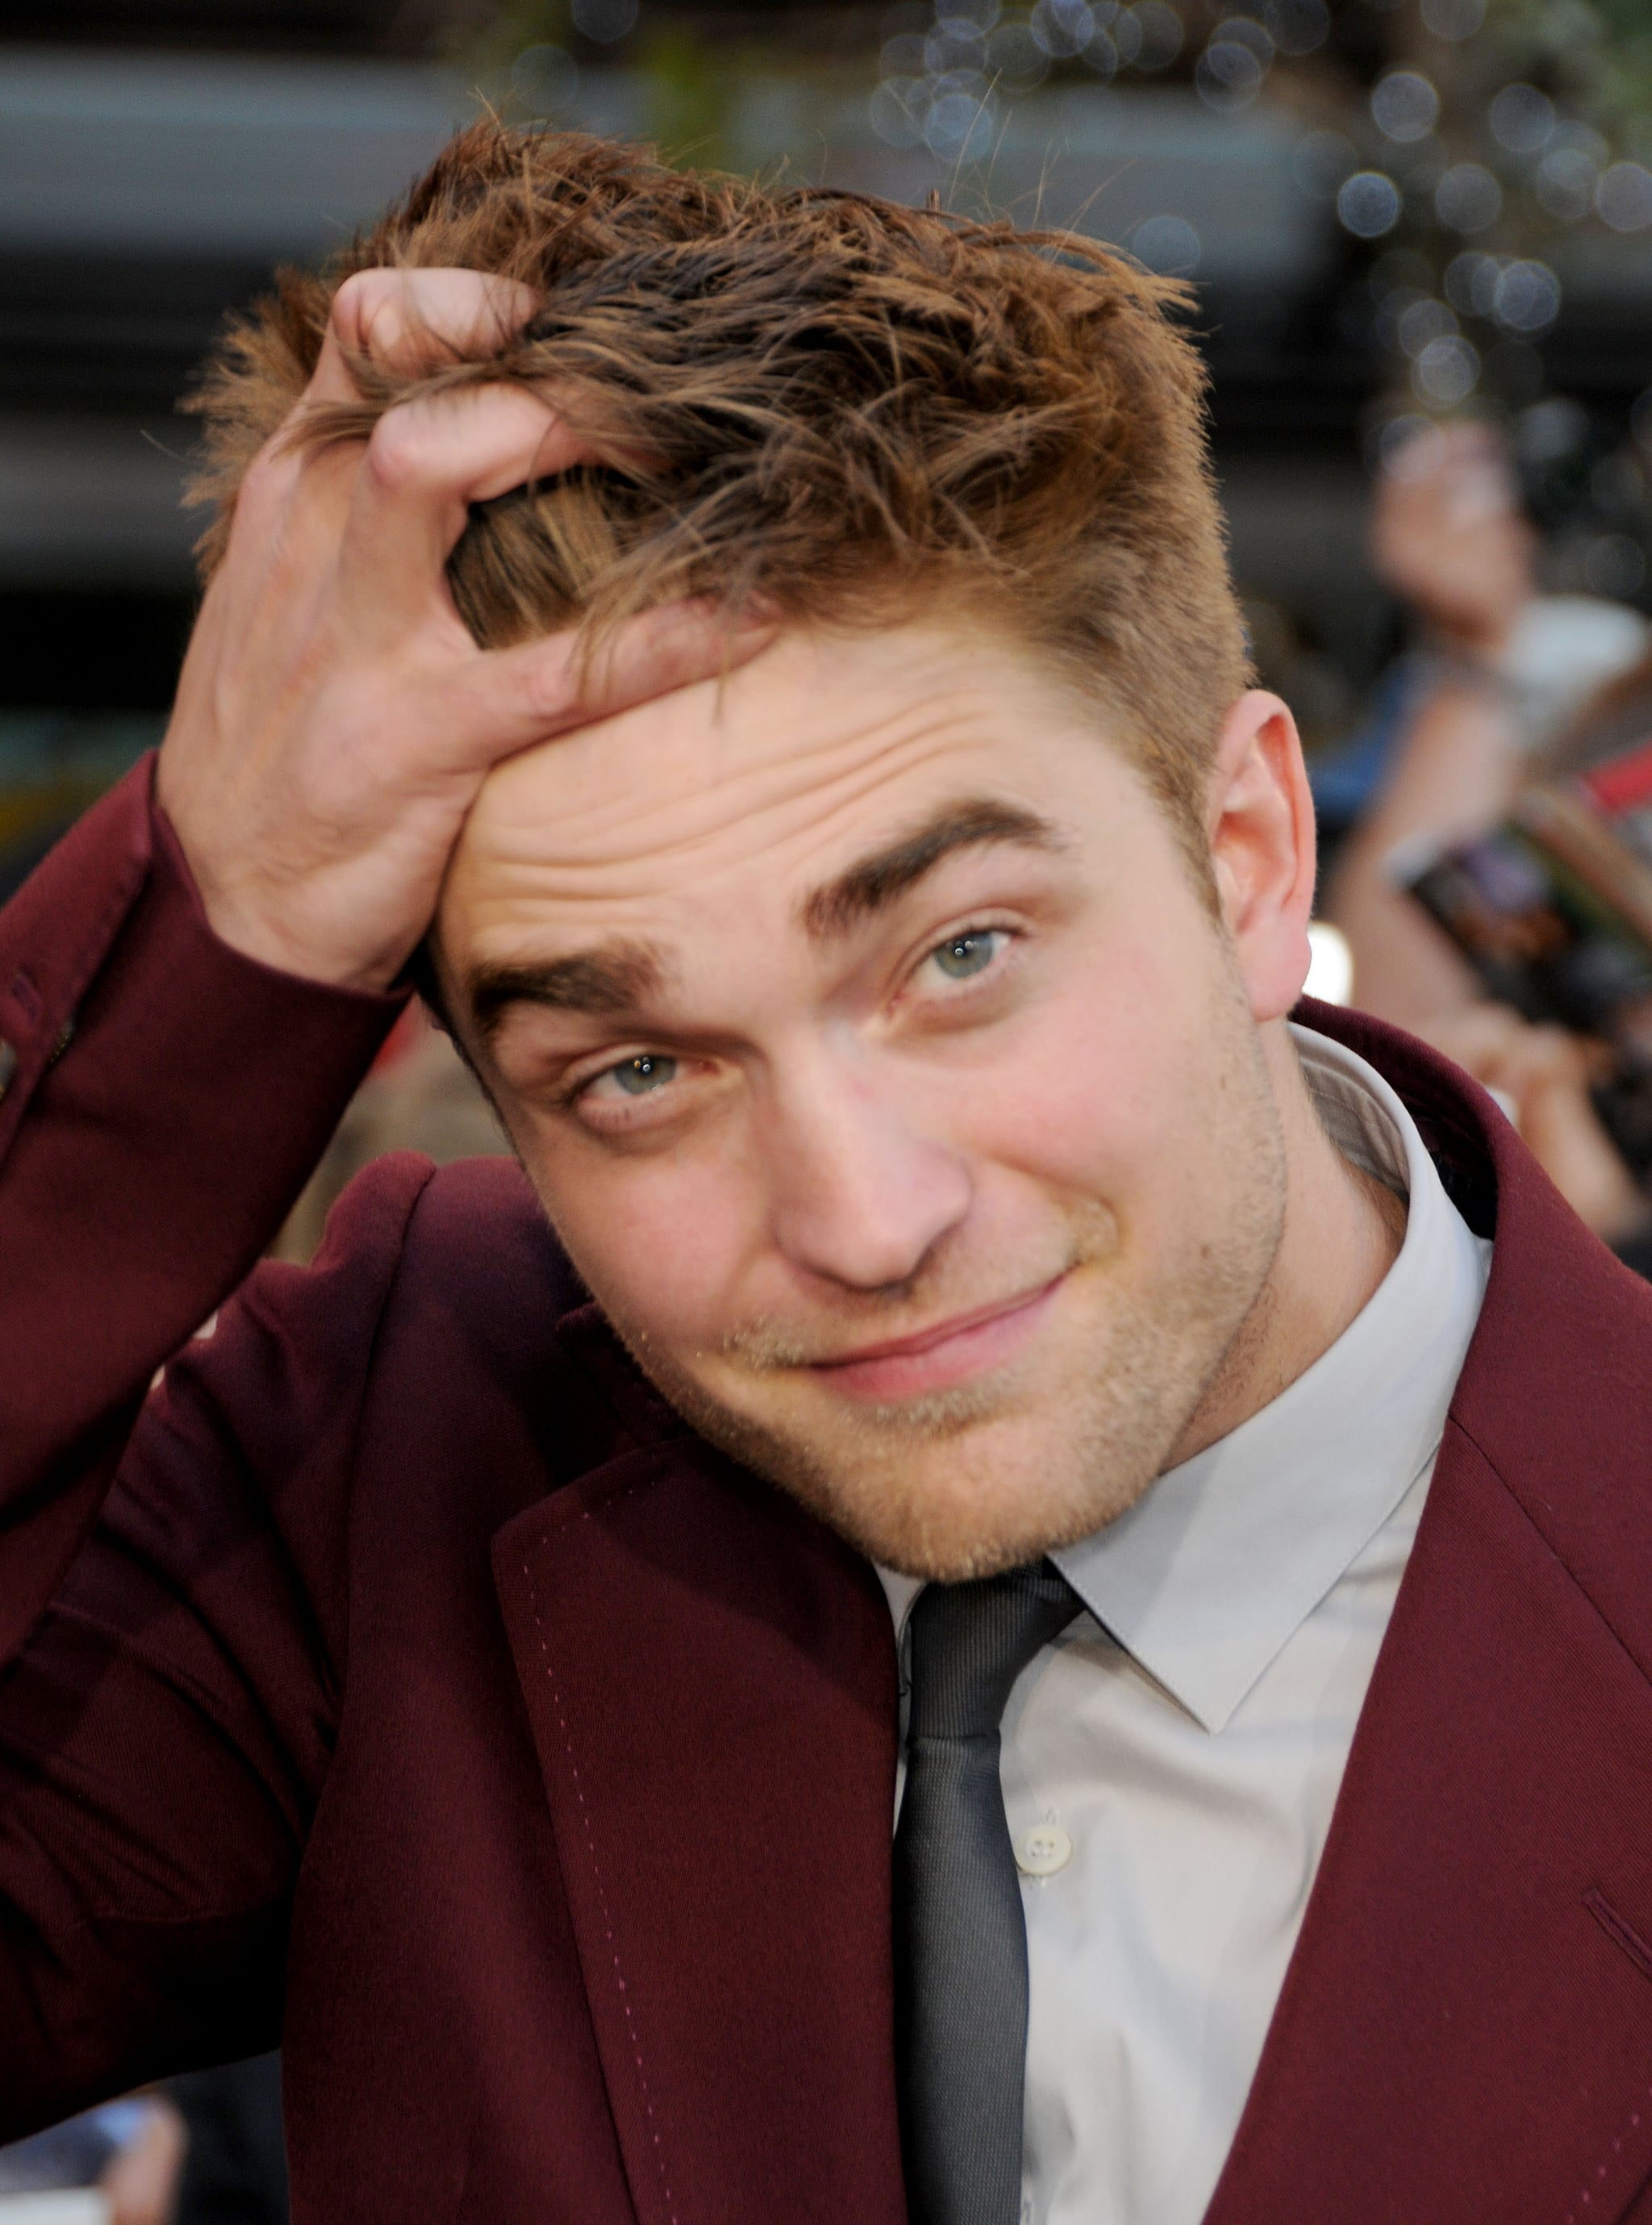 He was in fine form for the June 2010 LA premiere of Eclipse.